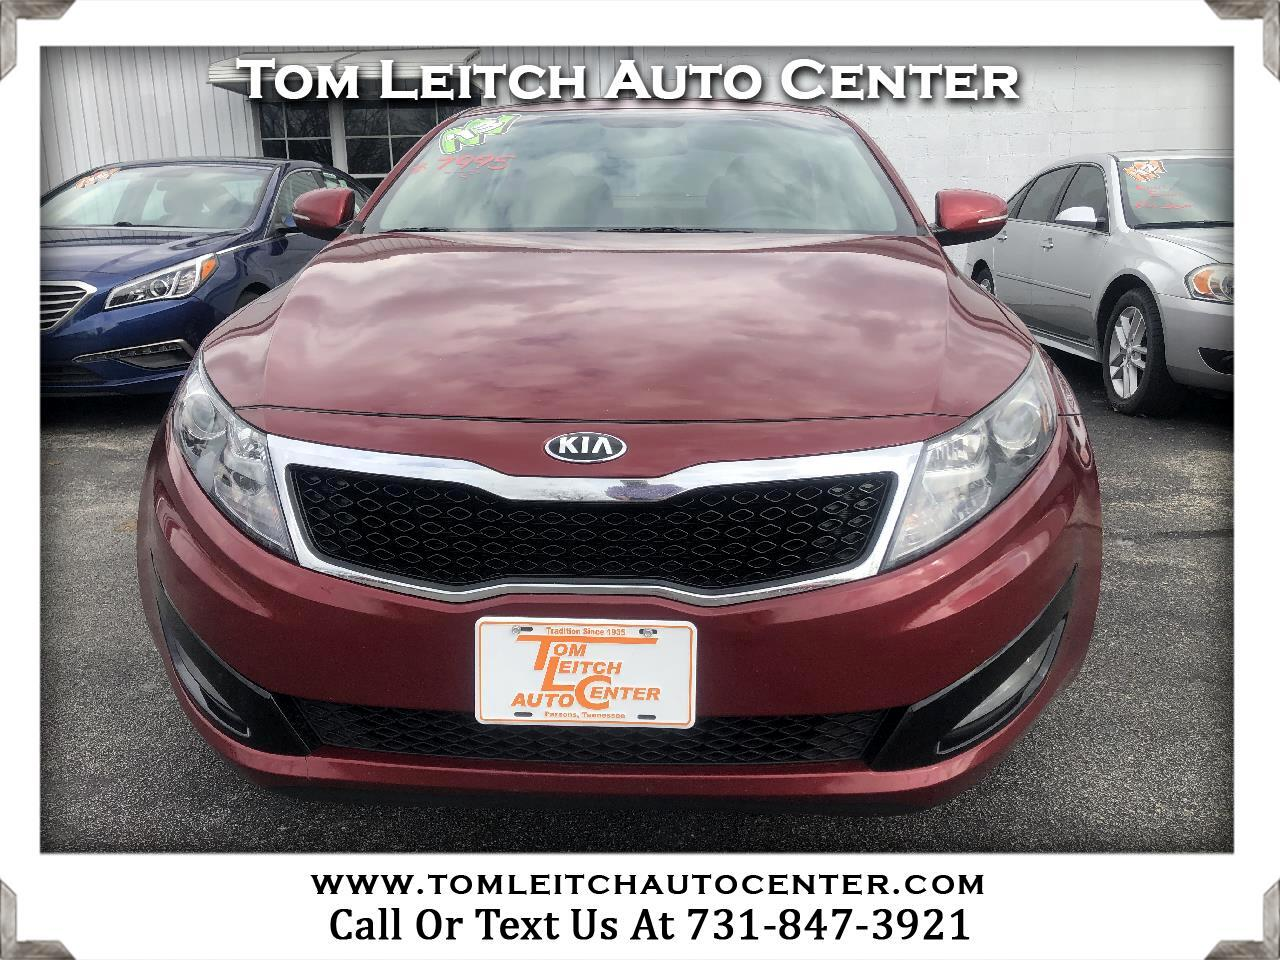 2013 Kia Optima 4dr Sdn LX